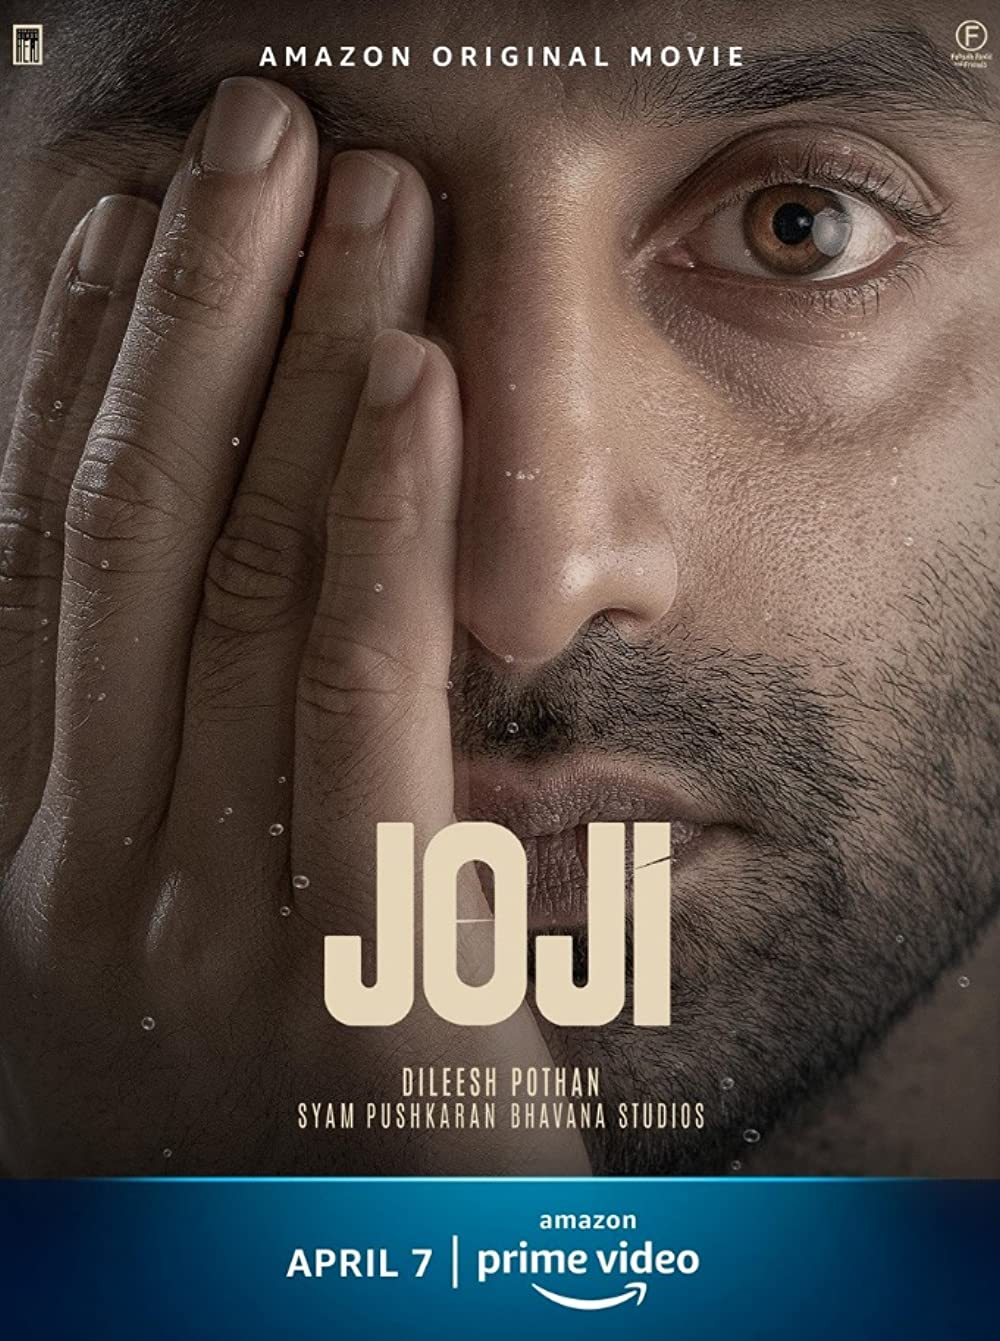 Joji 2021 Malayalam 720p AMZN HDRip ESubs 1.1GB Download